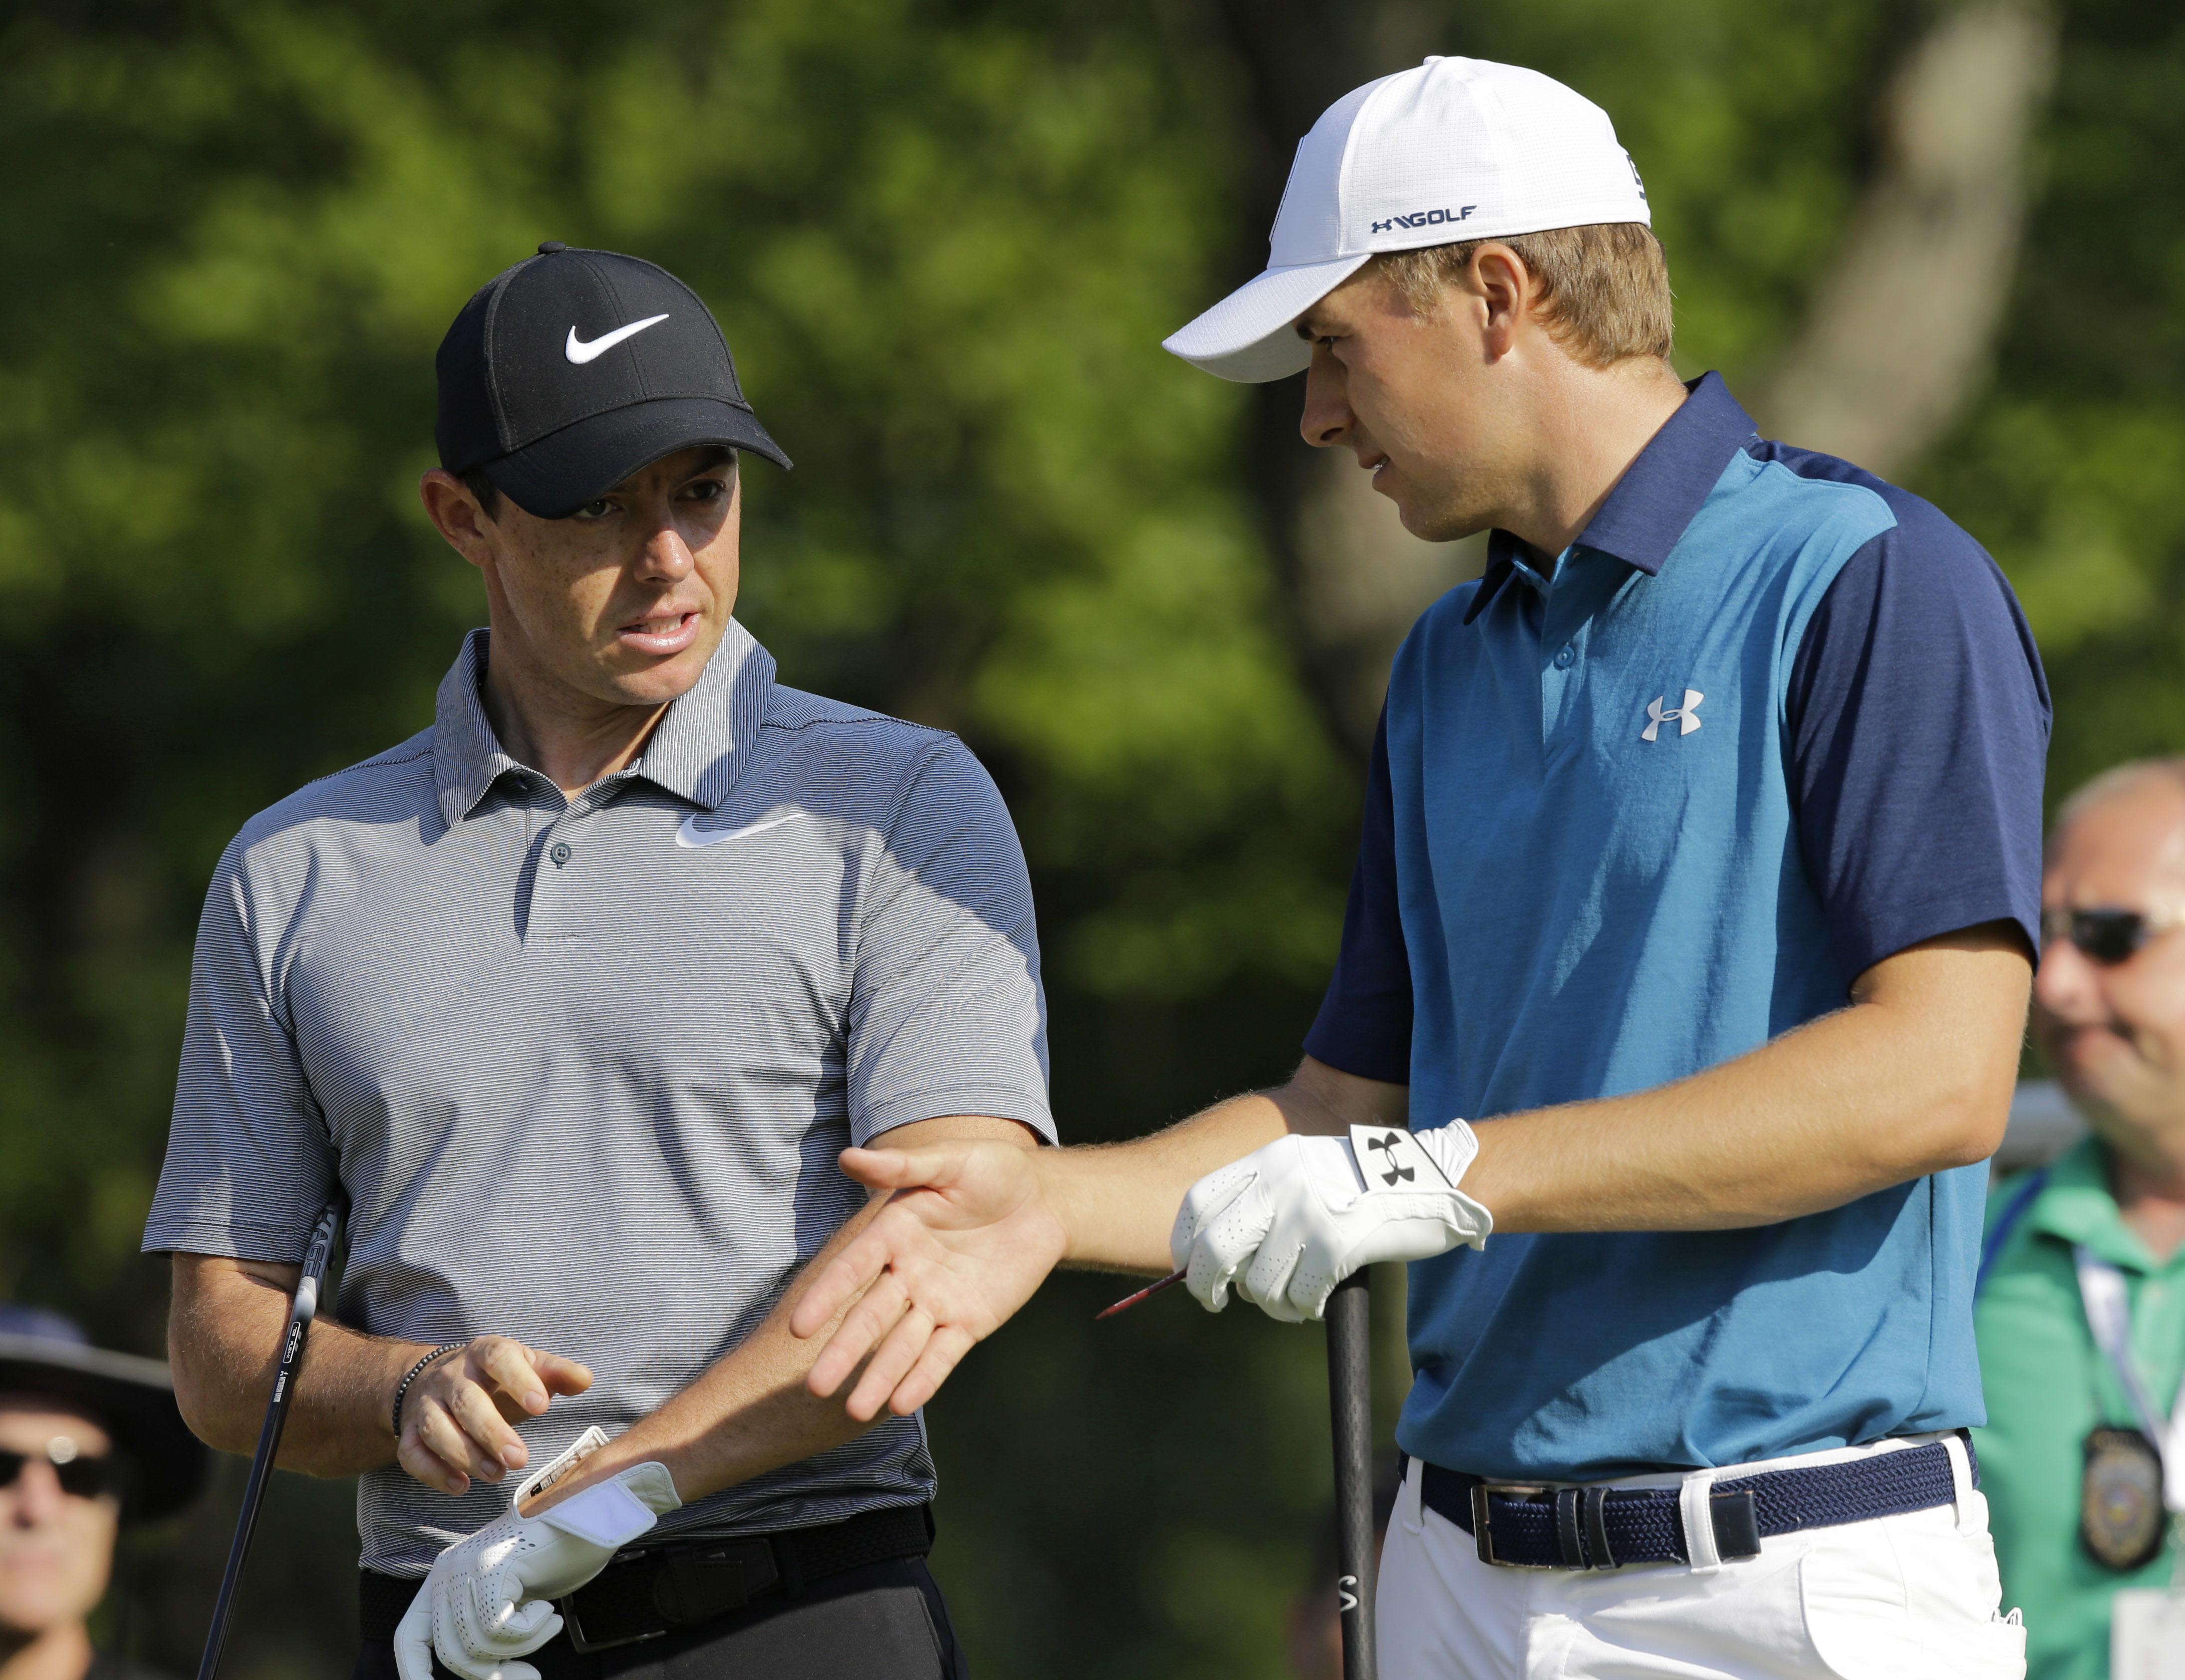 Jordan Spieth, right, and Rory McIlroy, from Northern Ireland, talk before teeing off on the 14th hole during the first round of the Bridgestone Invitational golf tournament at Firestone Country Club, Thursday, Aug. 3, 2017, in Akron, Ohio. (AP Photo/Tony